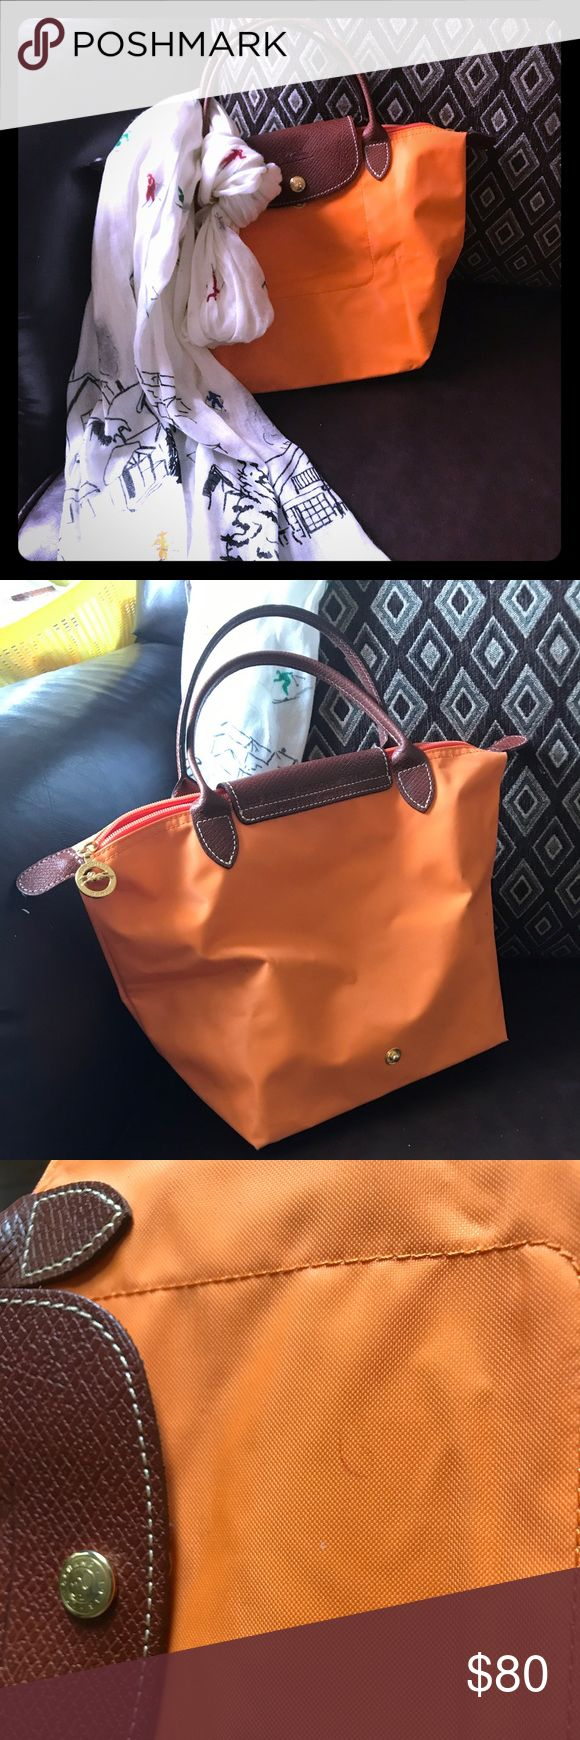 Authentic Longchamp Mini Le Pliage Tote Beautiful authentic Longchamp Le Pliage mini orange Tote bag pre loved with tons of life left!!!!!! Minor marks around as seen in pictures, clean inside and no tears or rips. Perfect for a casual/ dress down outing!!!! Longchamp Bags Totes